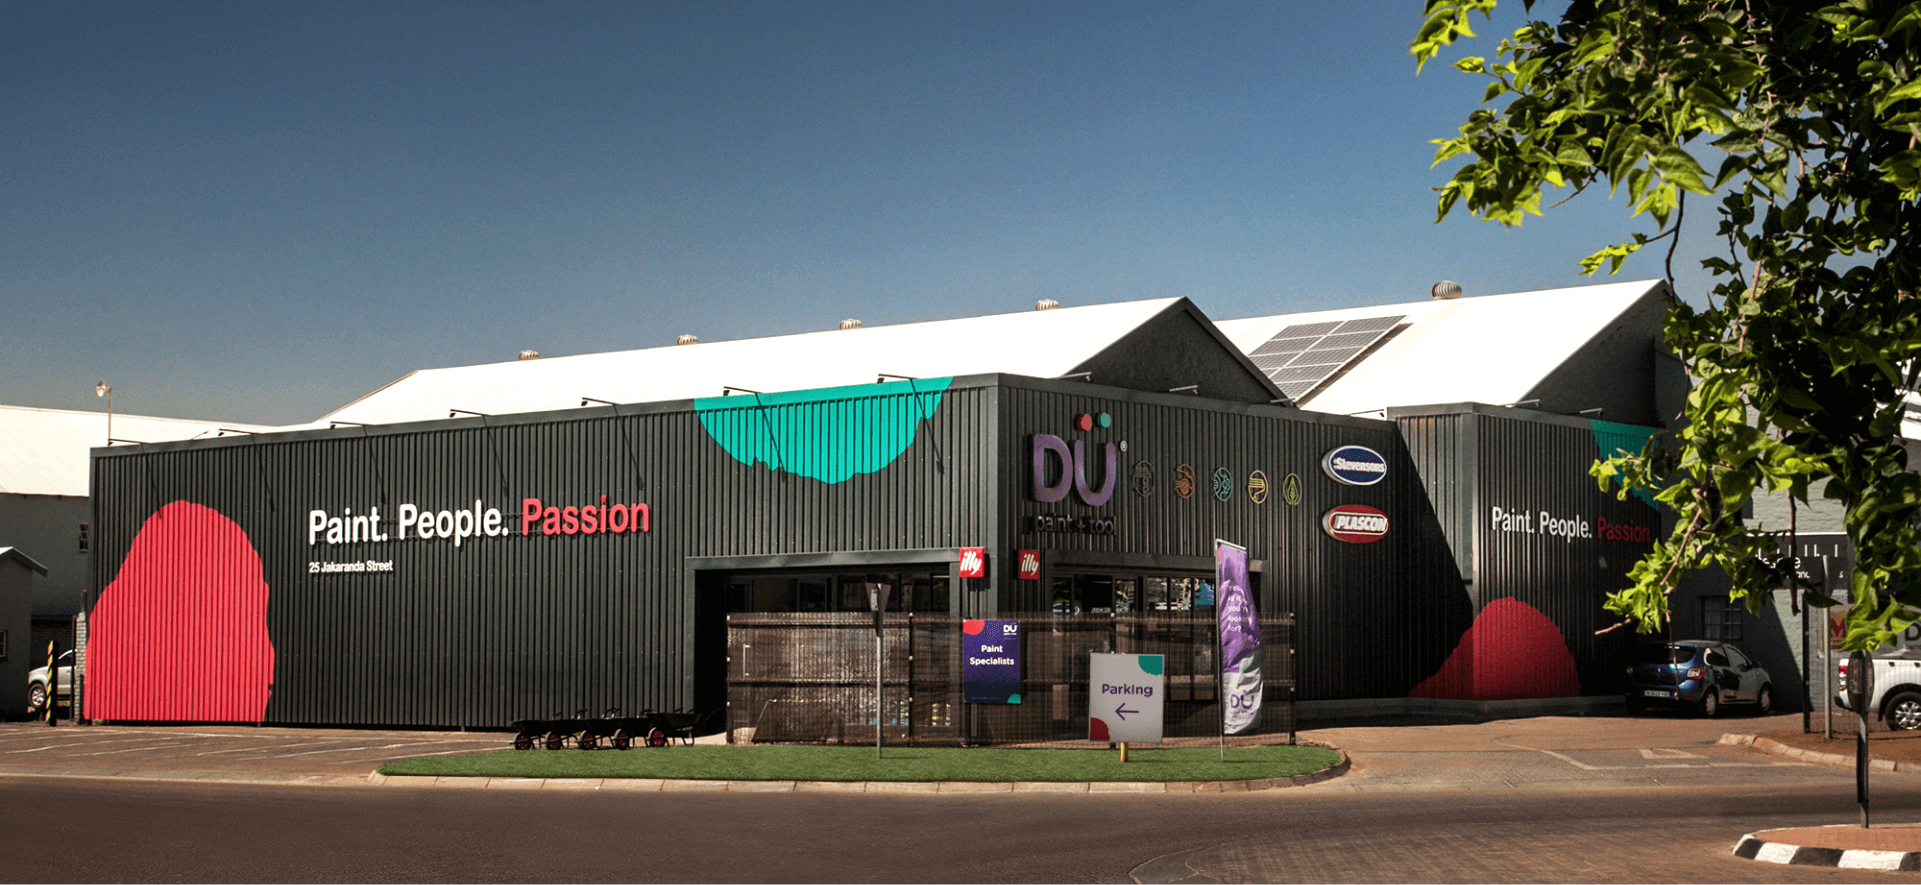 Creative Caterpillar client Dü Paint and Tool Centurion store building signage.